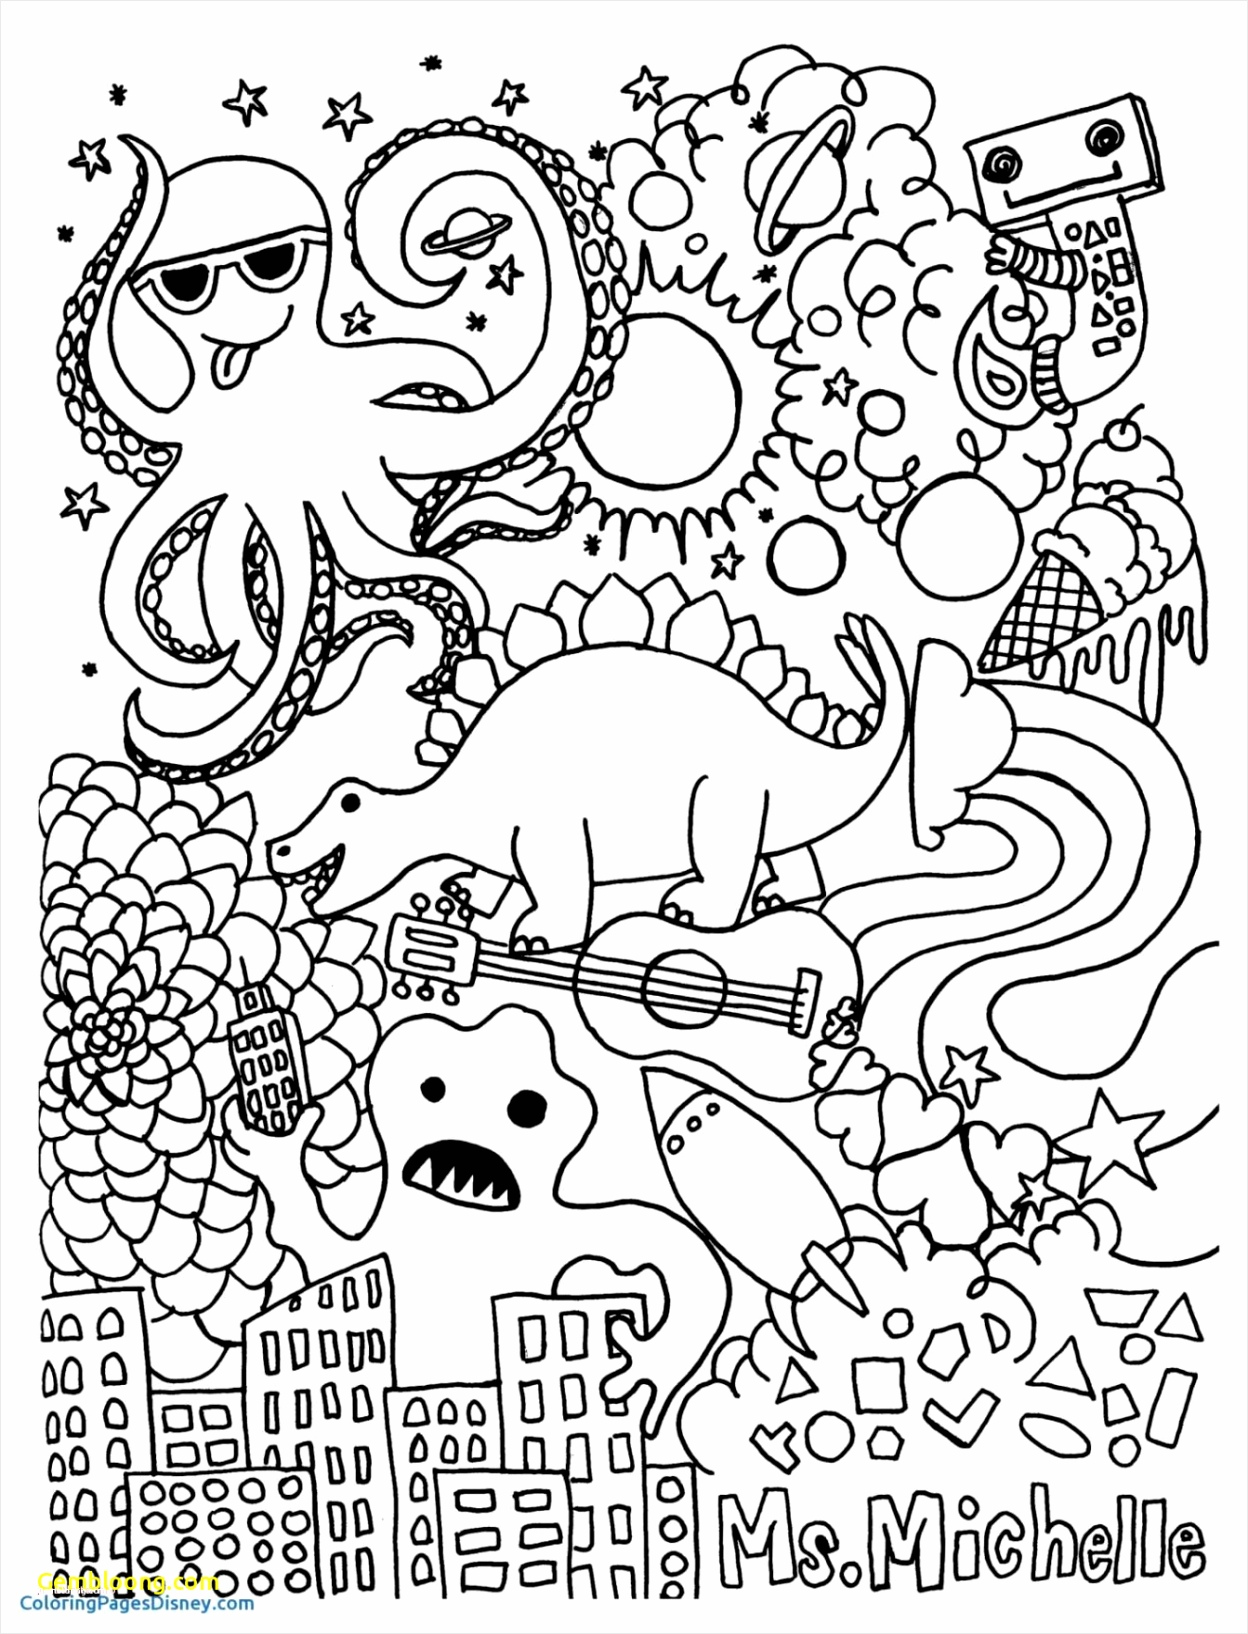 printable coloring mindfulness colouring sheets free disney to print out for children pages wupei